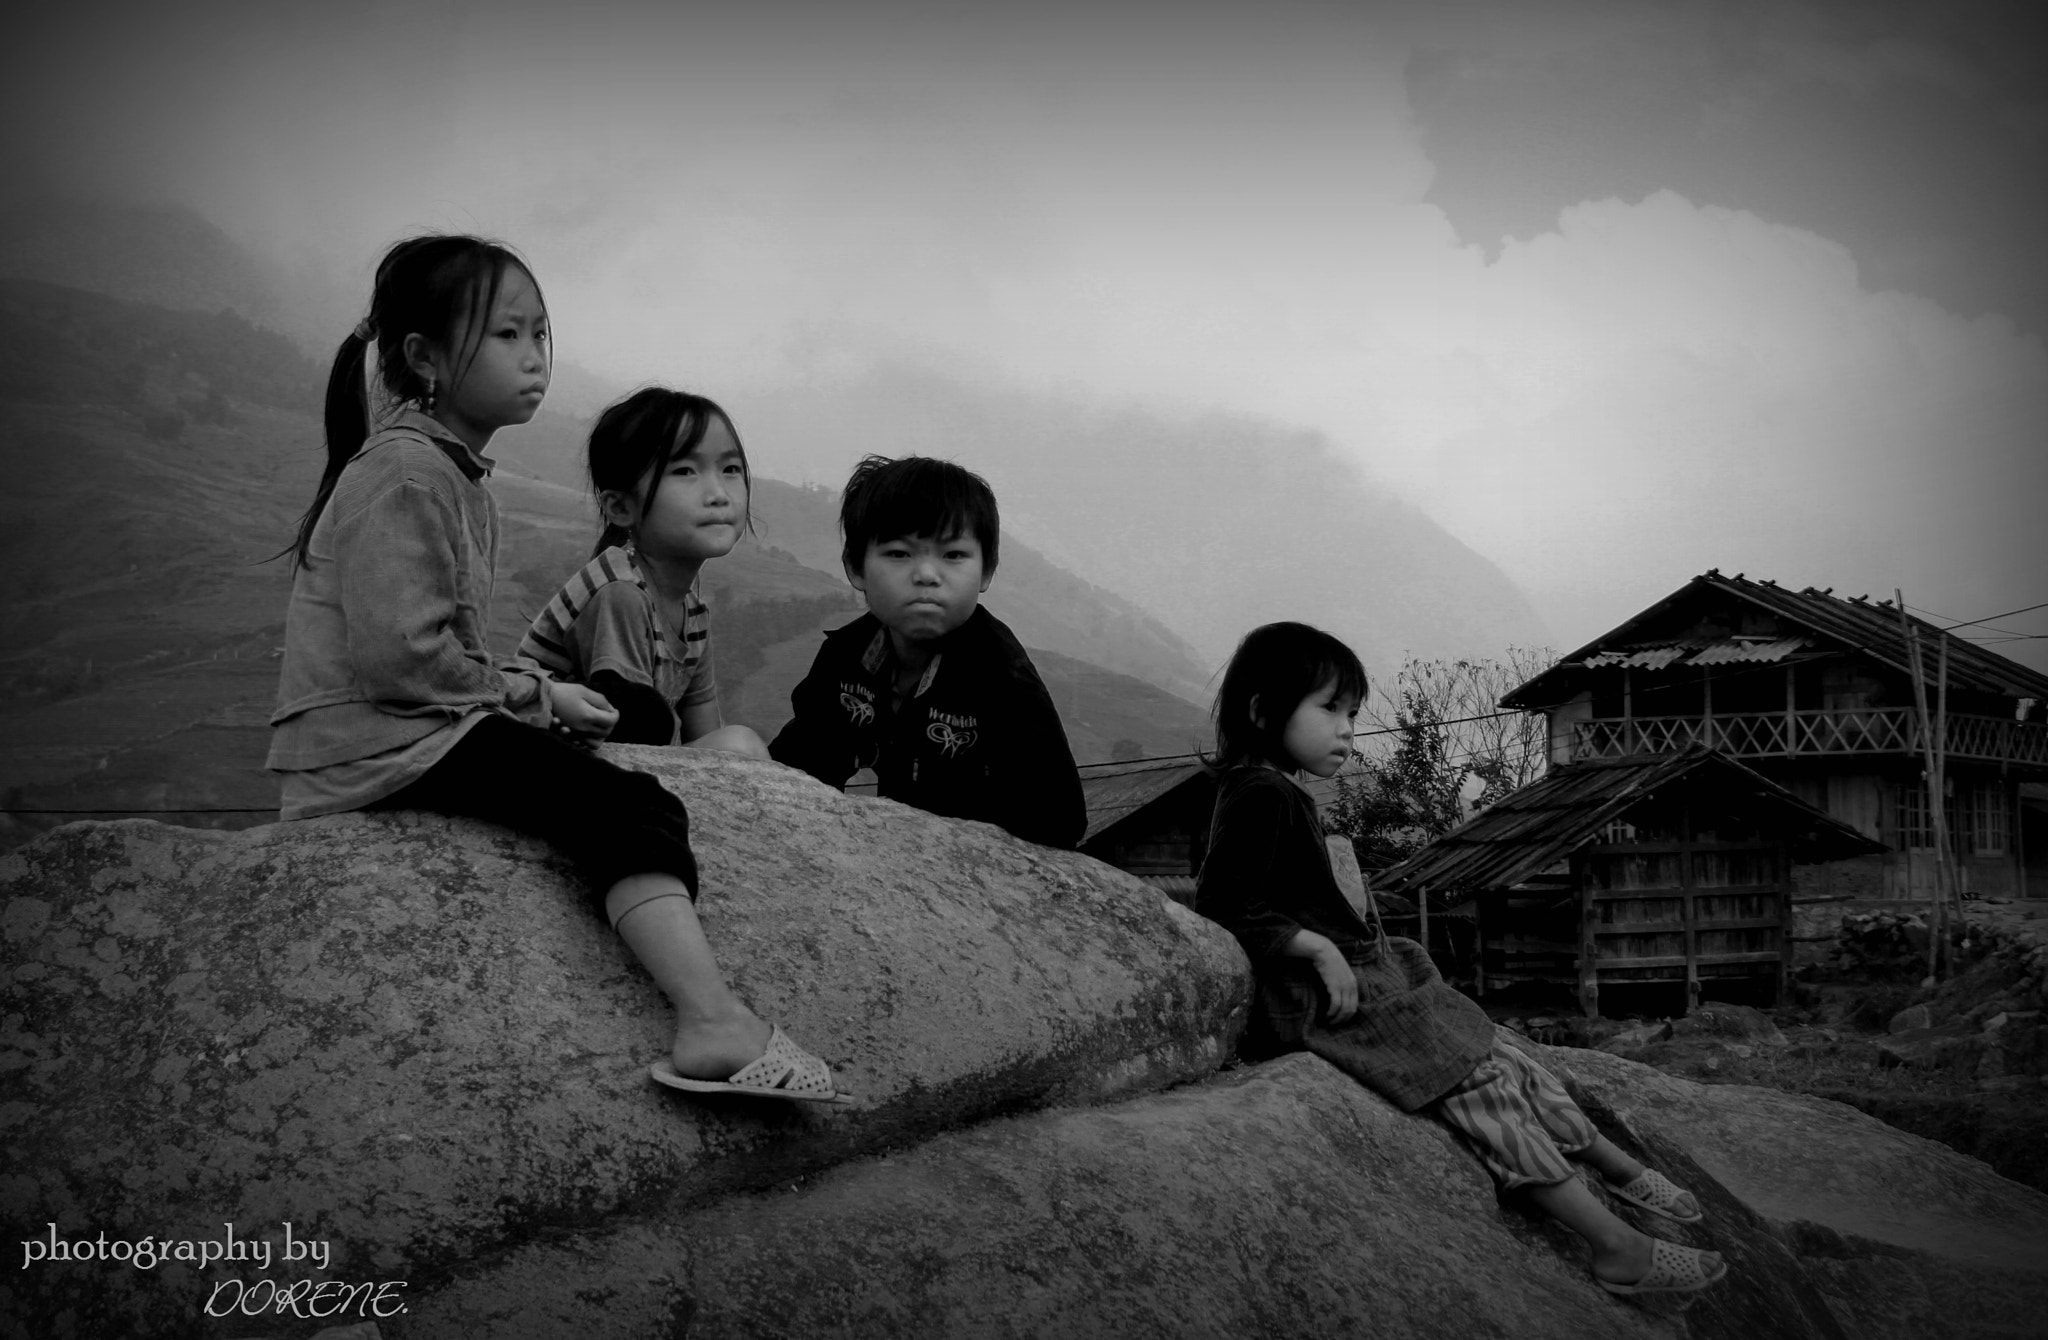 Photograph Sapa. by Photography by Dorene. on 500px